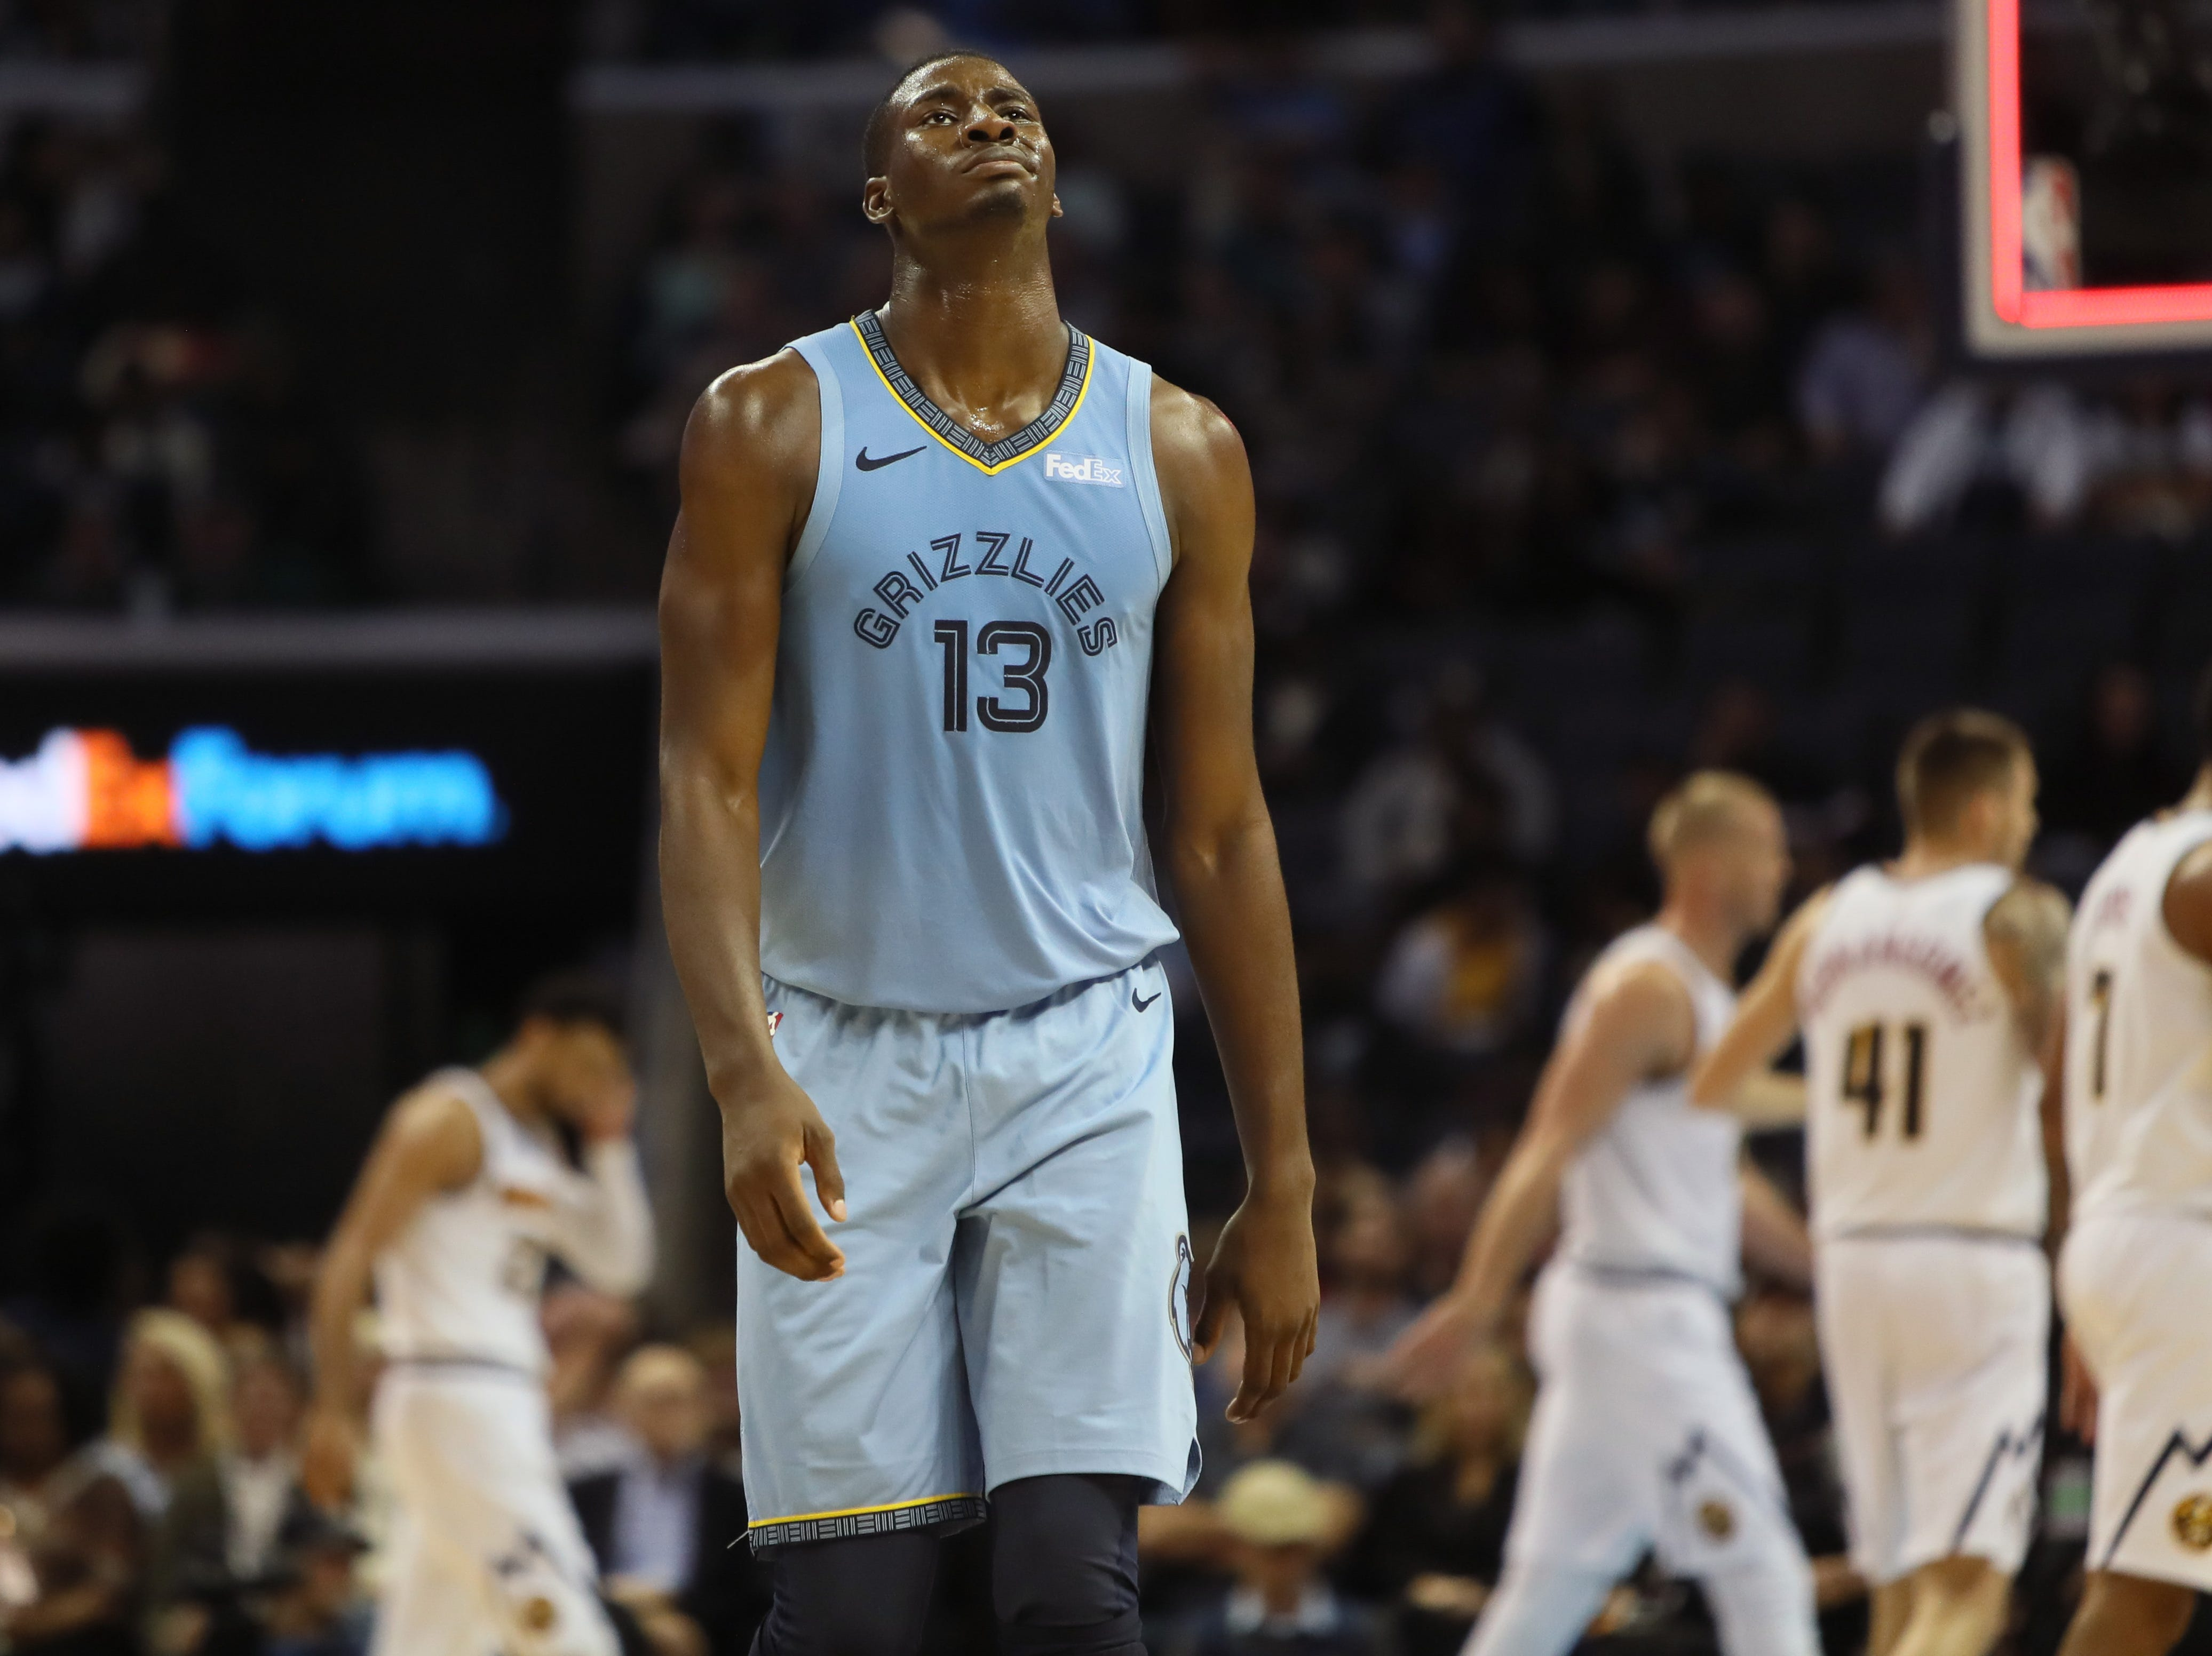 Memphis Grizzlies forward Jaren JAckson walks off the court after the team misses a third quarter field goal to end the period against the Denver Nuggets guard during their game at the FedExForum on Wednesday, November 7, 2018.